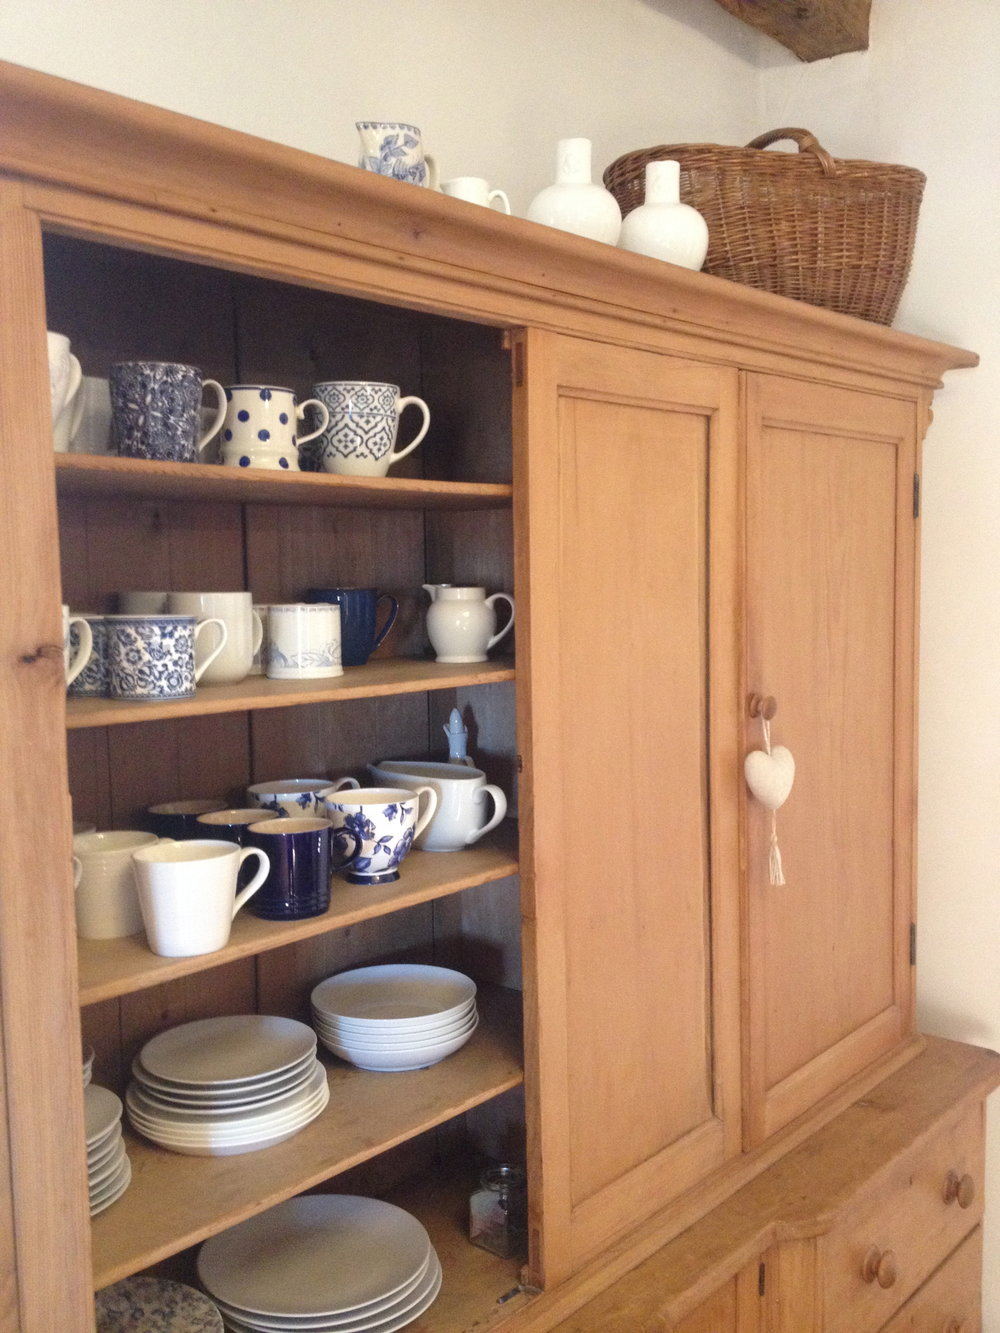 It was a picture of the blue and white cups cupboard that kicked off our instagram account in January, The French Farmhouse in Quercy.